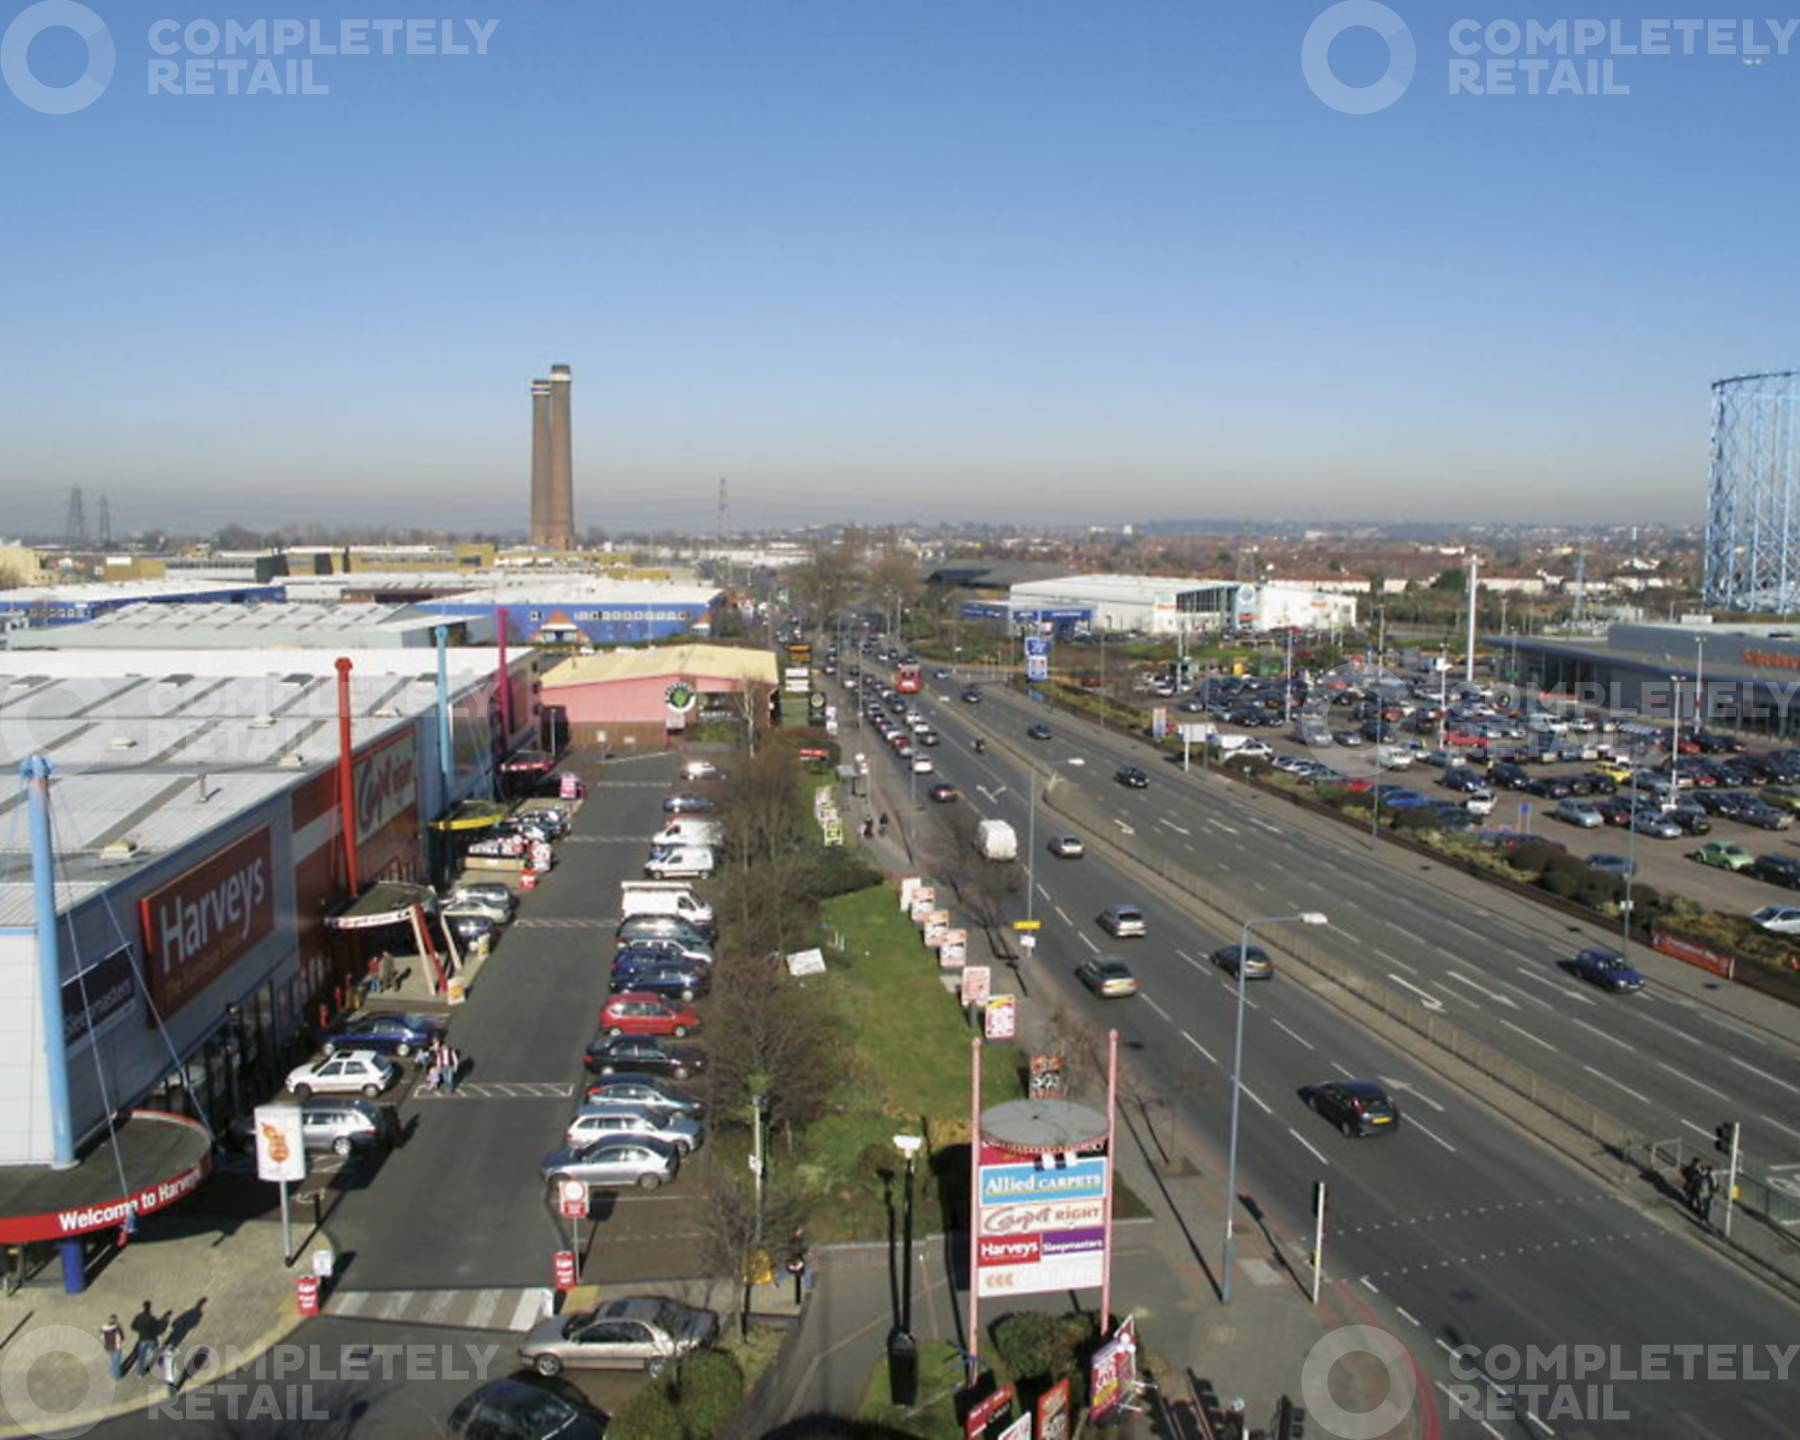 Purley Way Retail Park